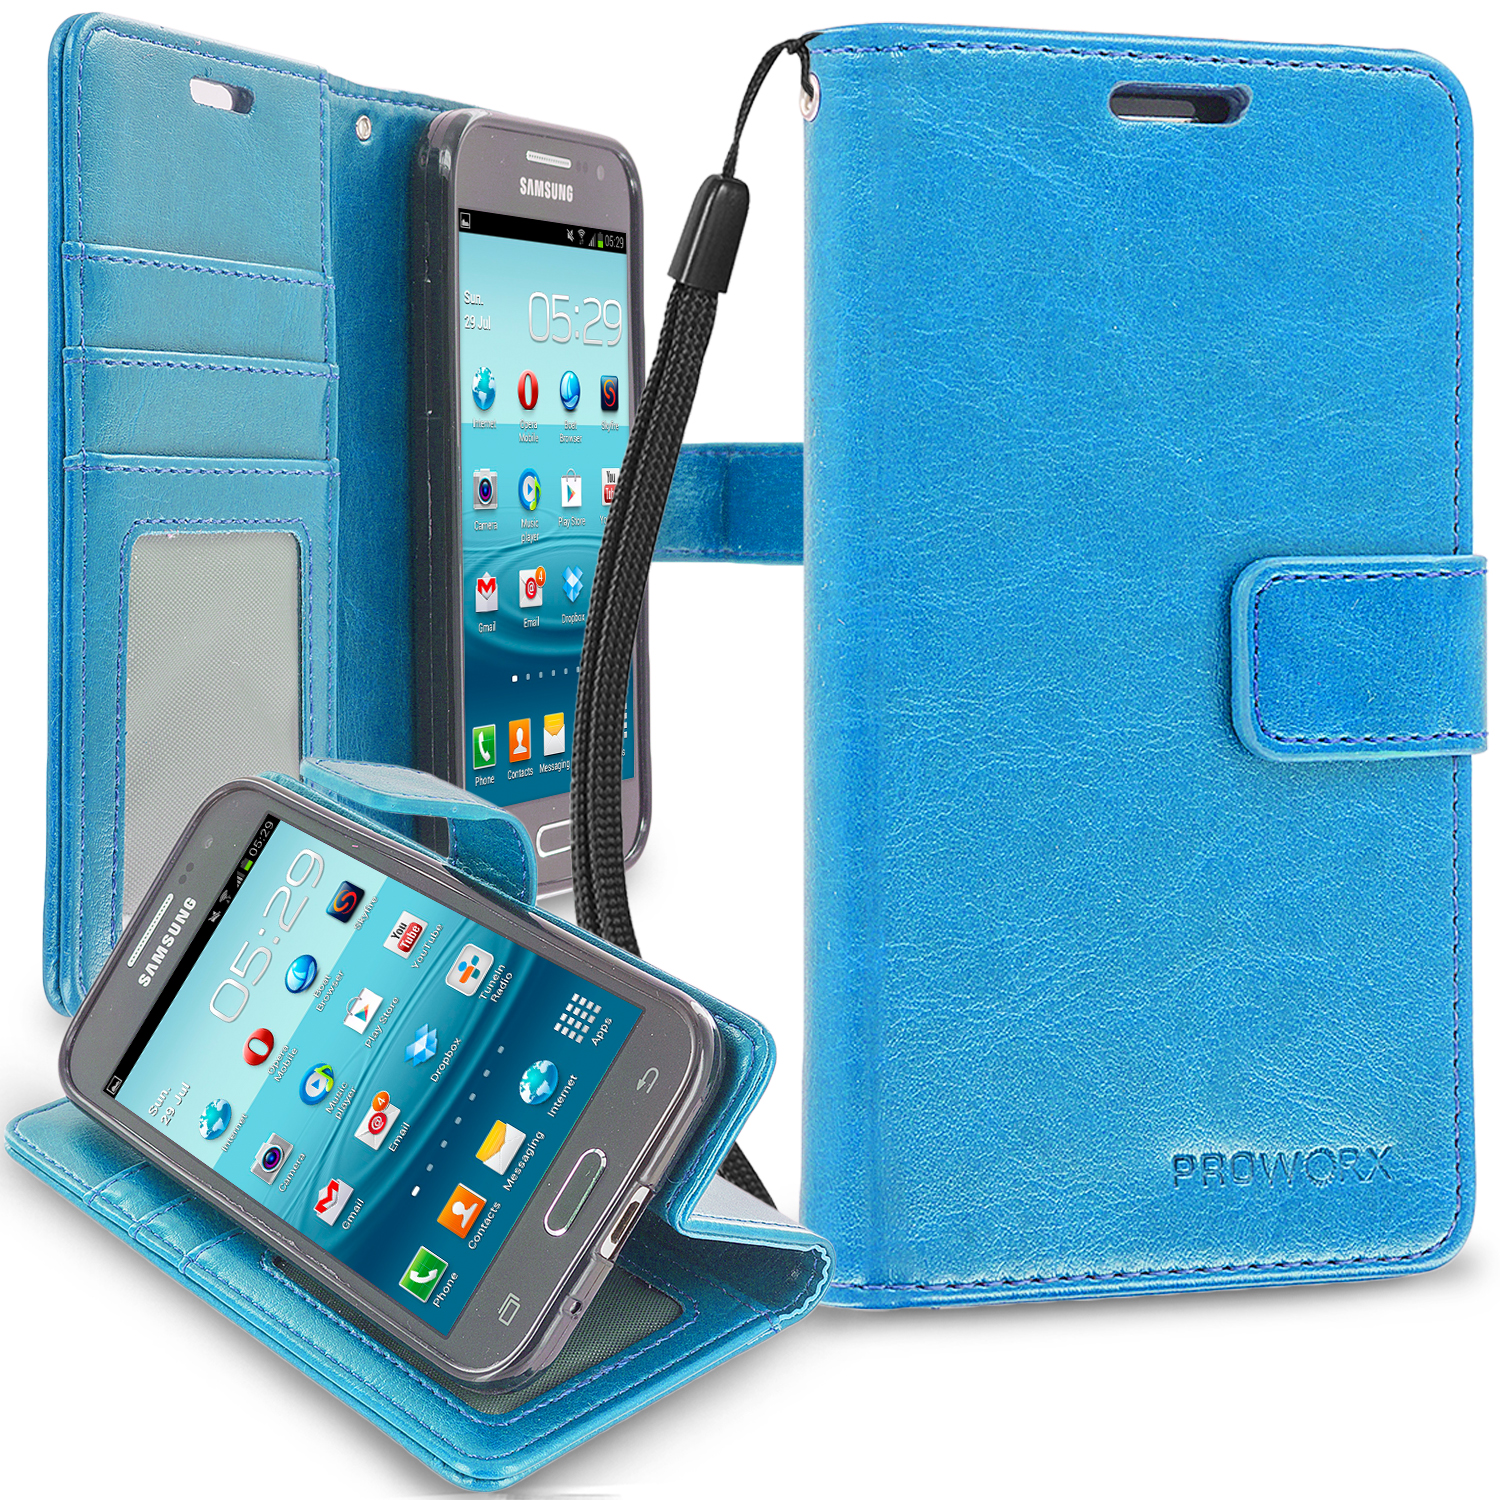 Samsung Galaxy Prevail LTE Core Prime G360P Baby Blue ProWorx Wallet Case Luxury PU Leather Case Cover With Card Slots & Stand